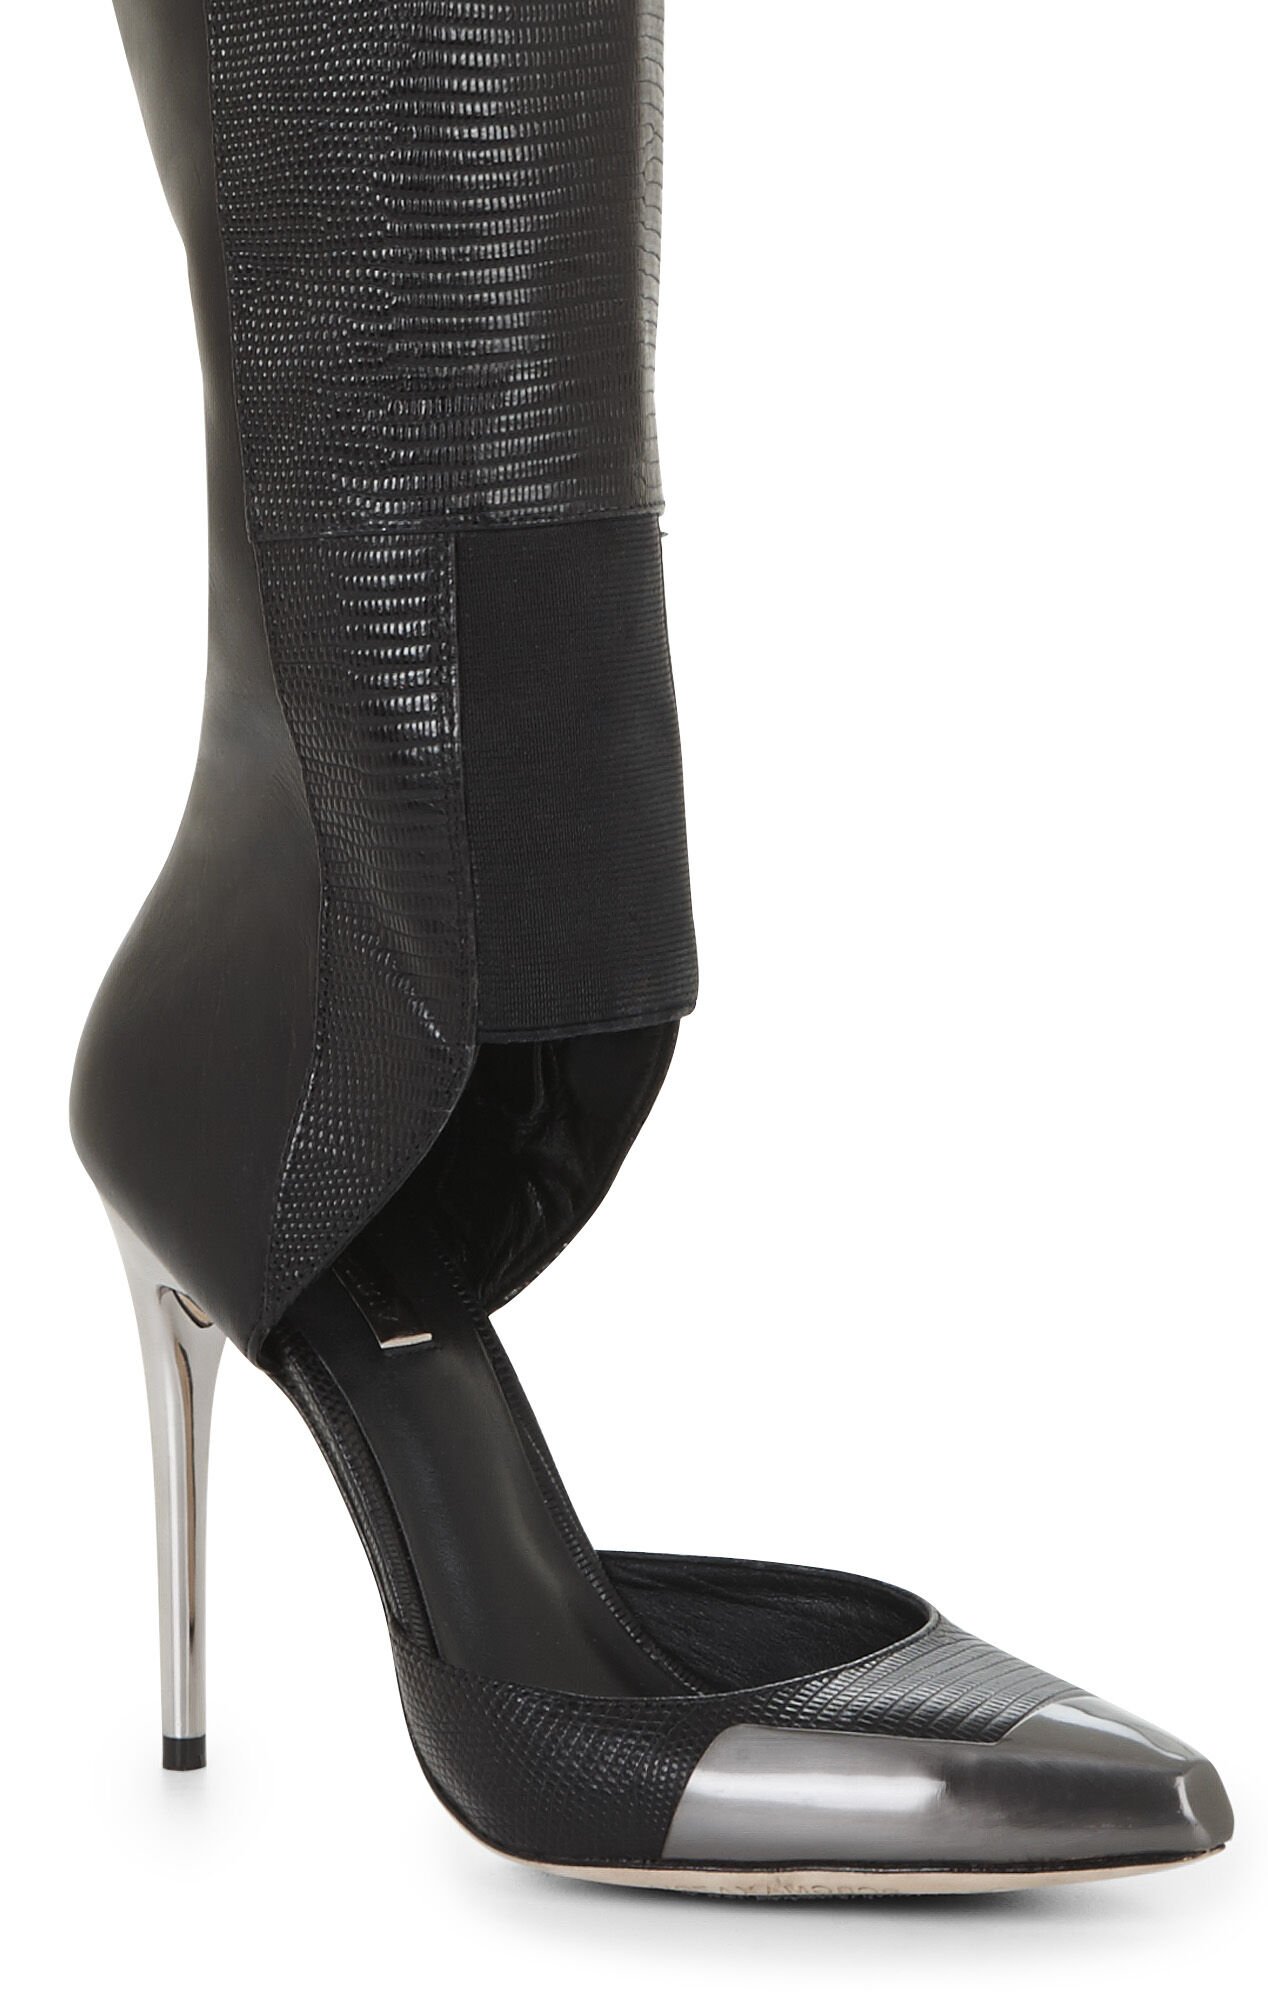 Runway Concorde High-Heel Thigh-High Boot